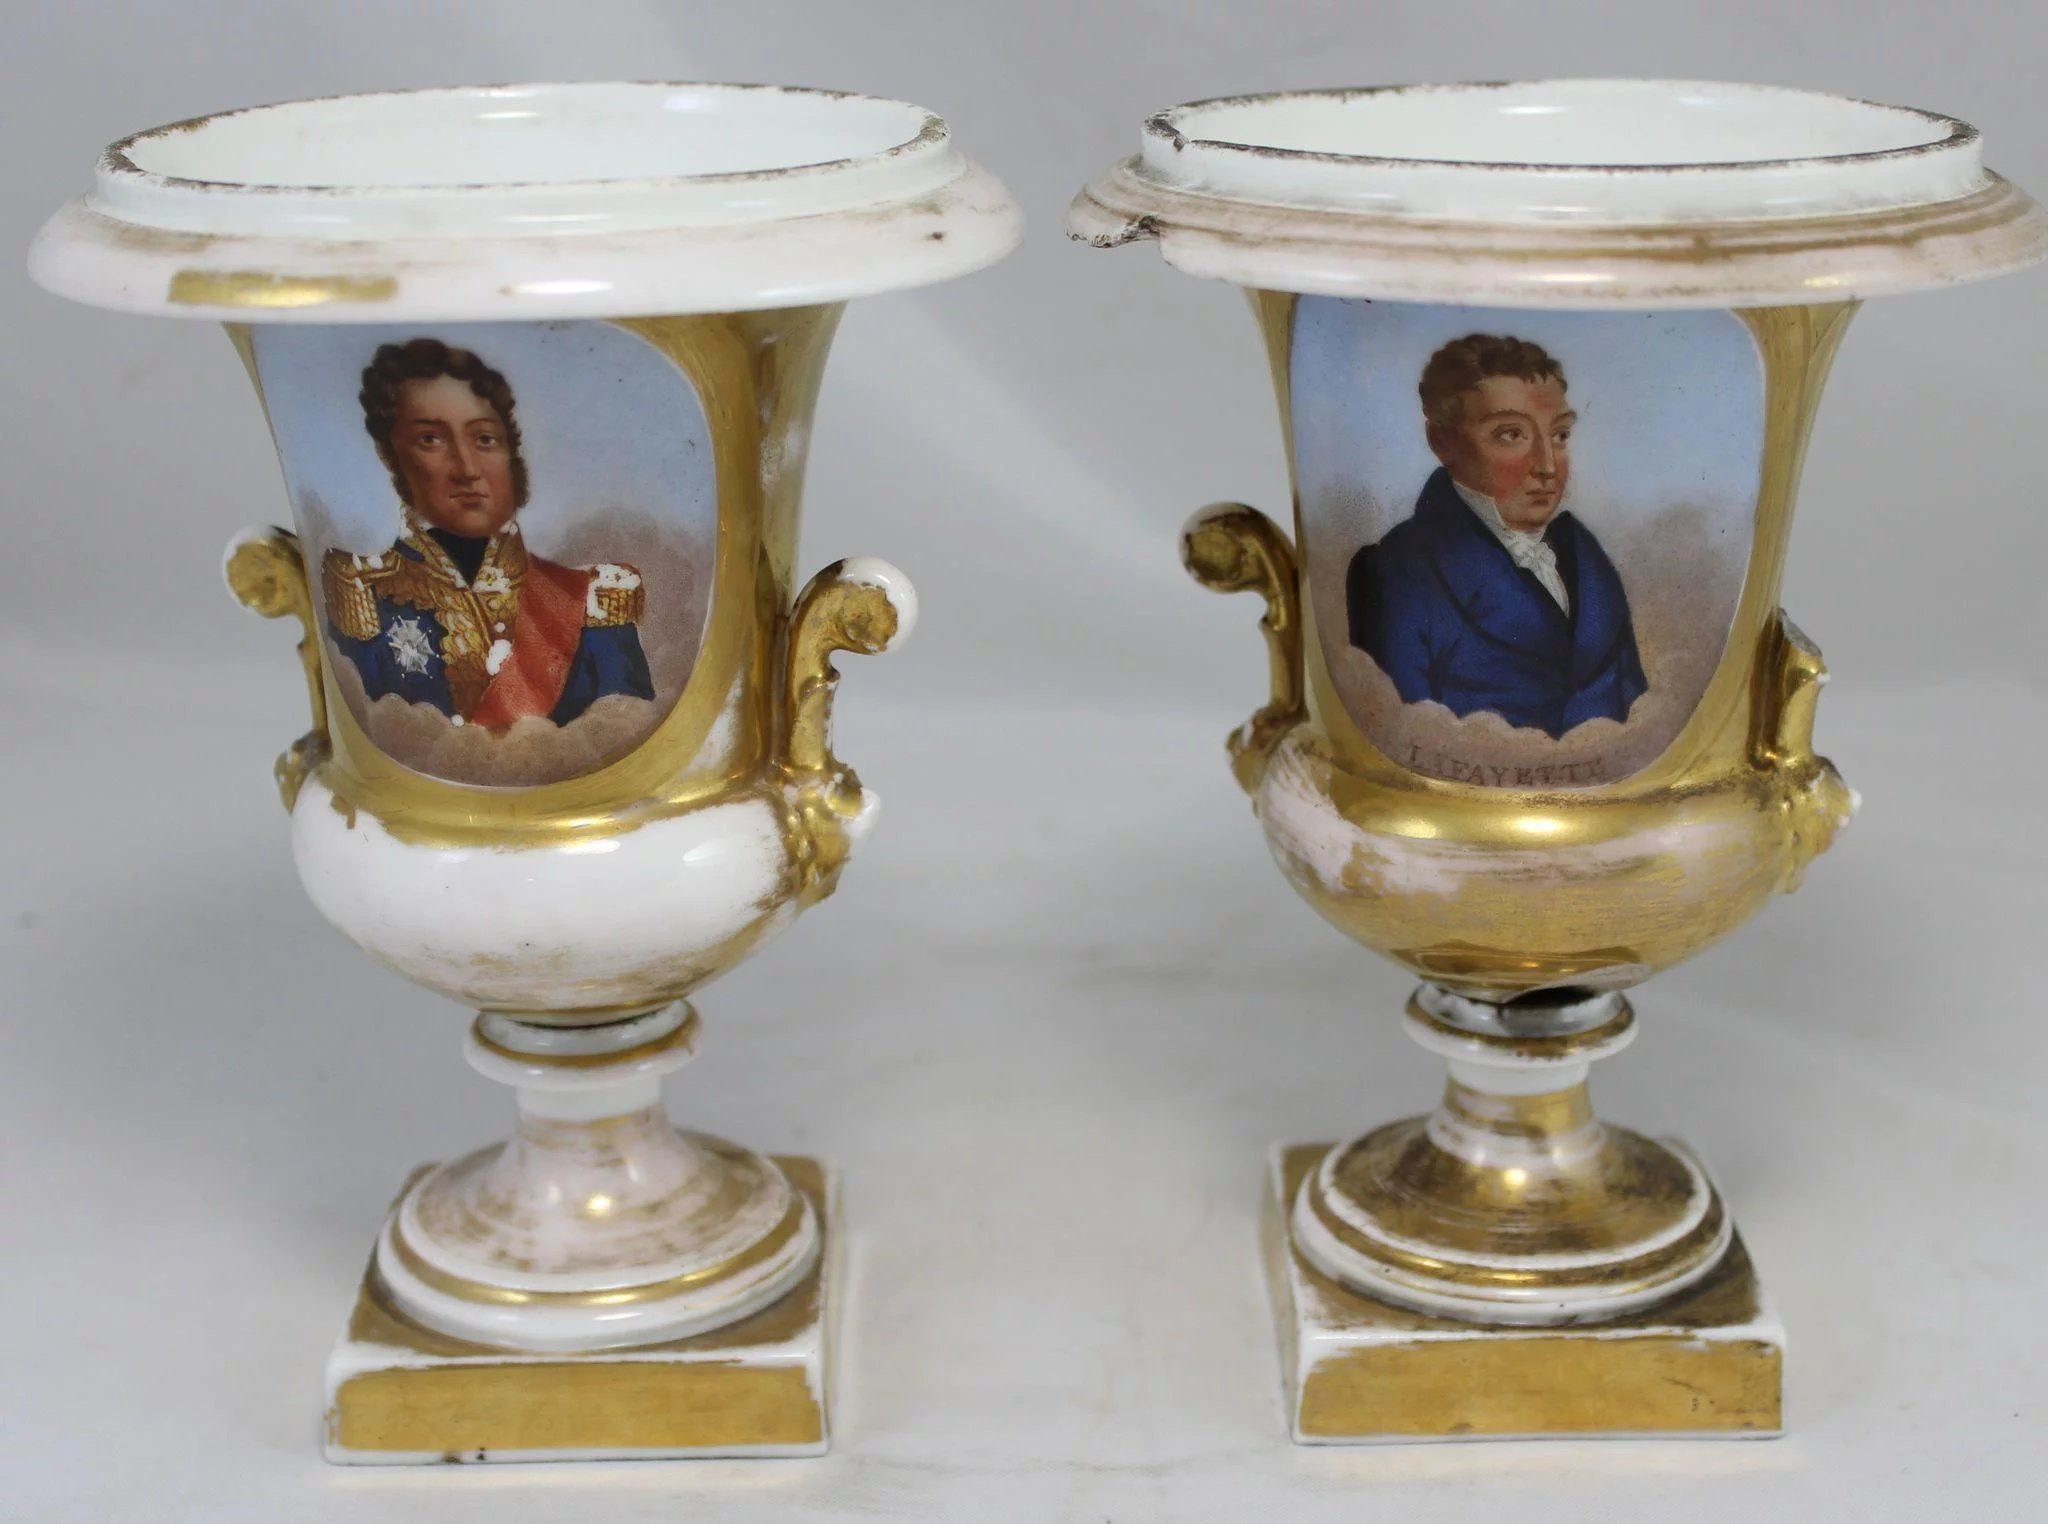 Marquis 11 Crystal Vase Of Revolutionary War General Marquis De Lafayette 7 Pc Memorabilia with Regard to Click to Expand